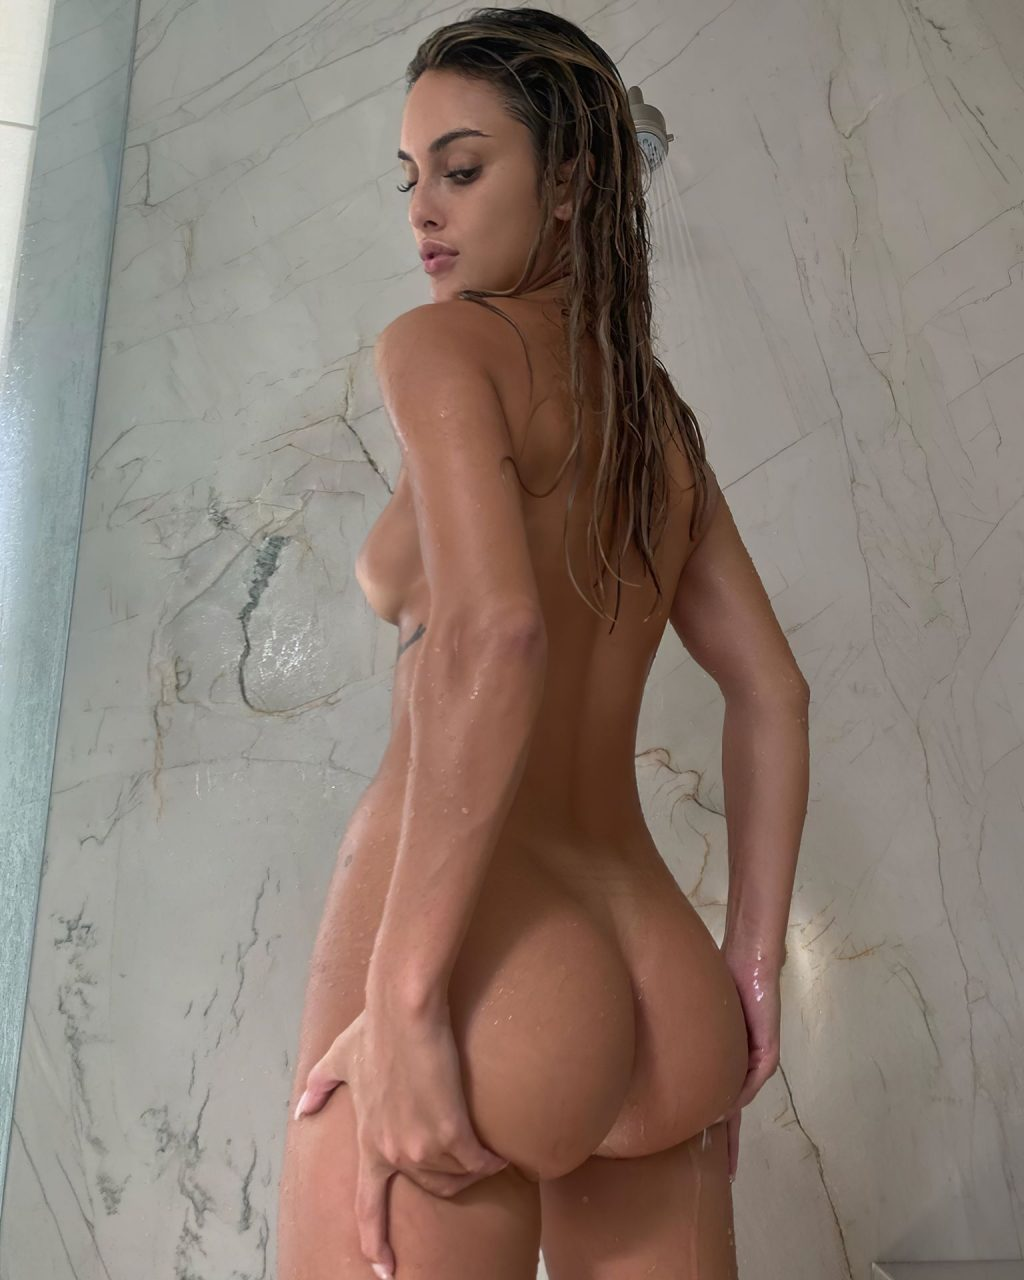 Julia Rose Shows Off Her Nude Tits and Butt (3 Photos)